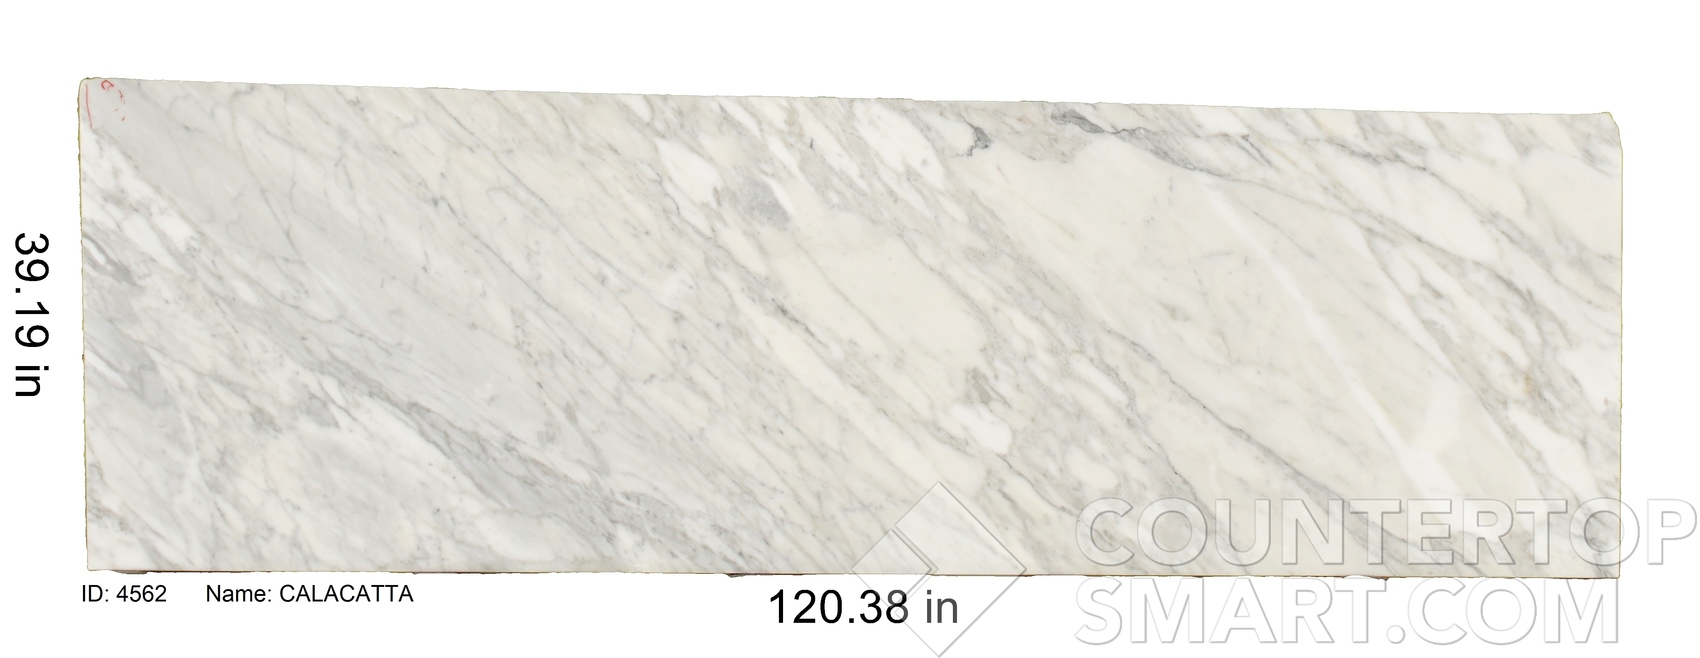 75 Off Your Perfect Marble Calacatta Caldia Countertop Remnant In Austin Texas Only 1265 37